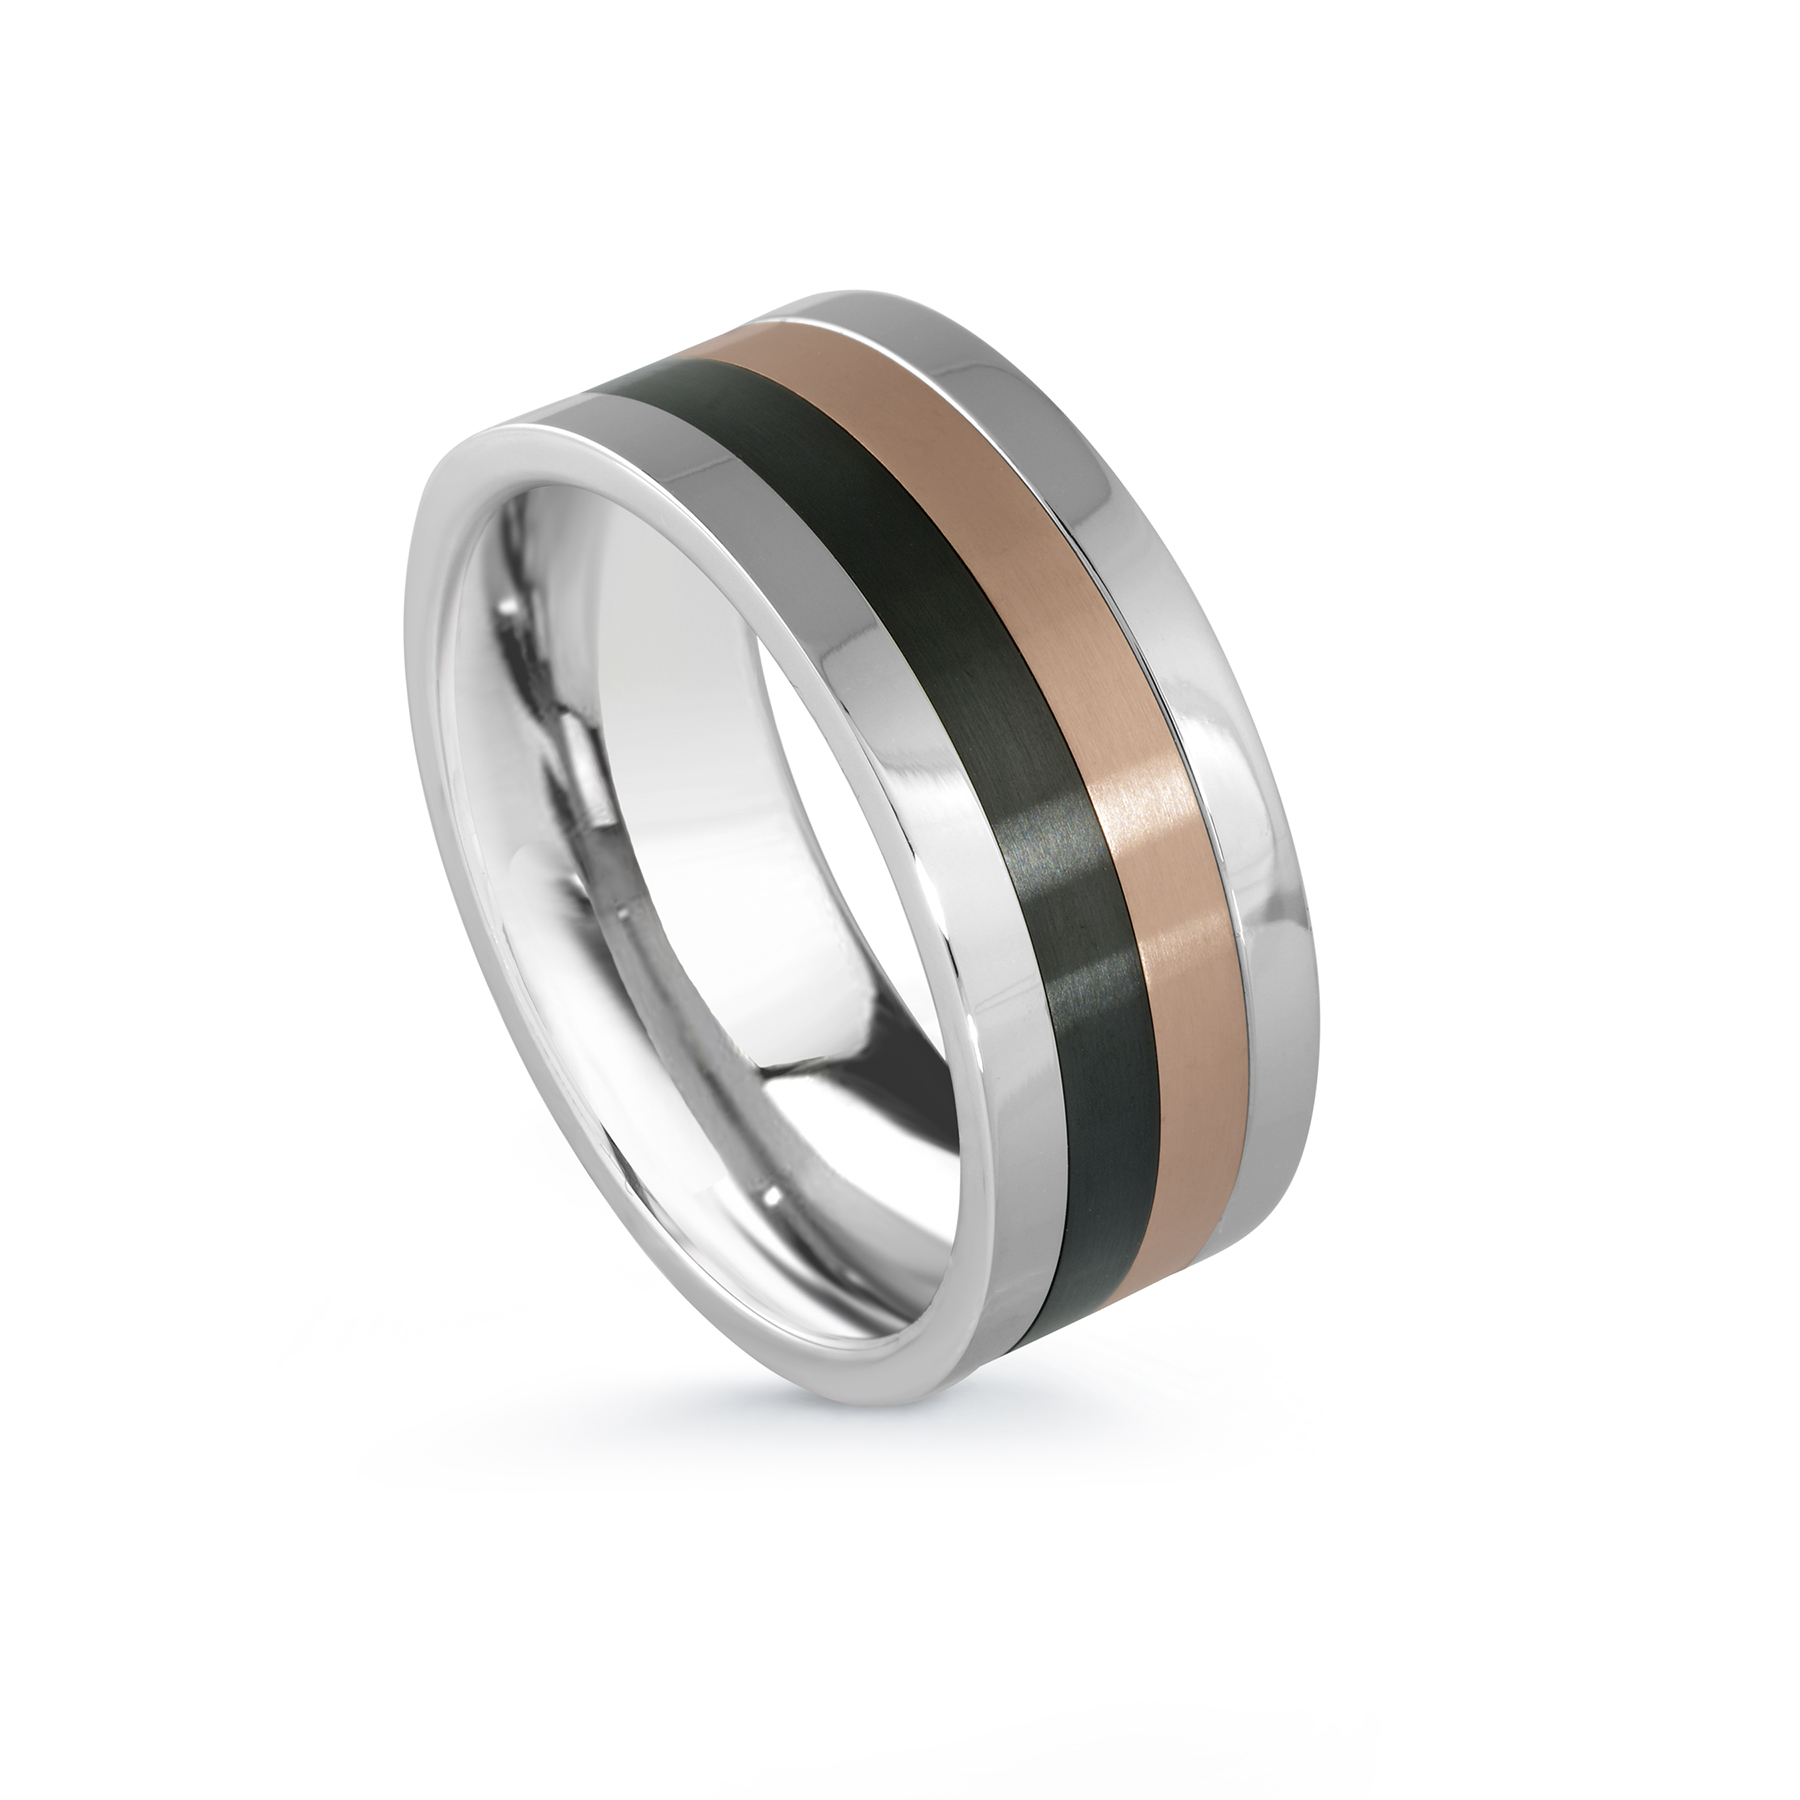 Band - 3-tones Stainless steel